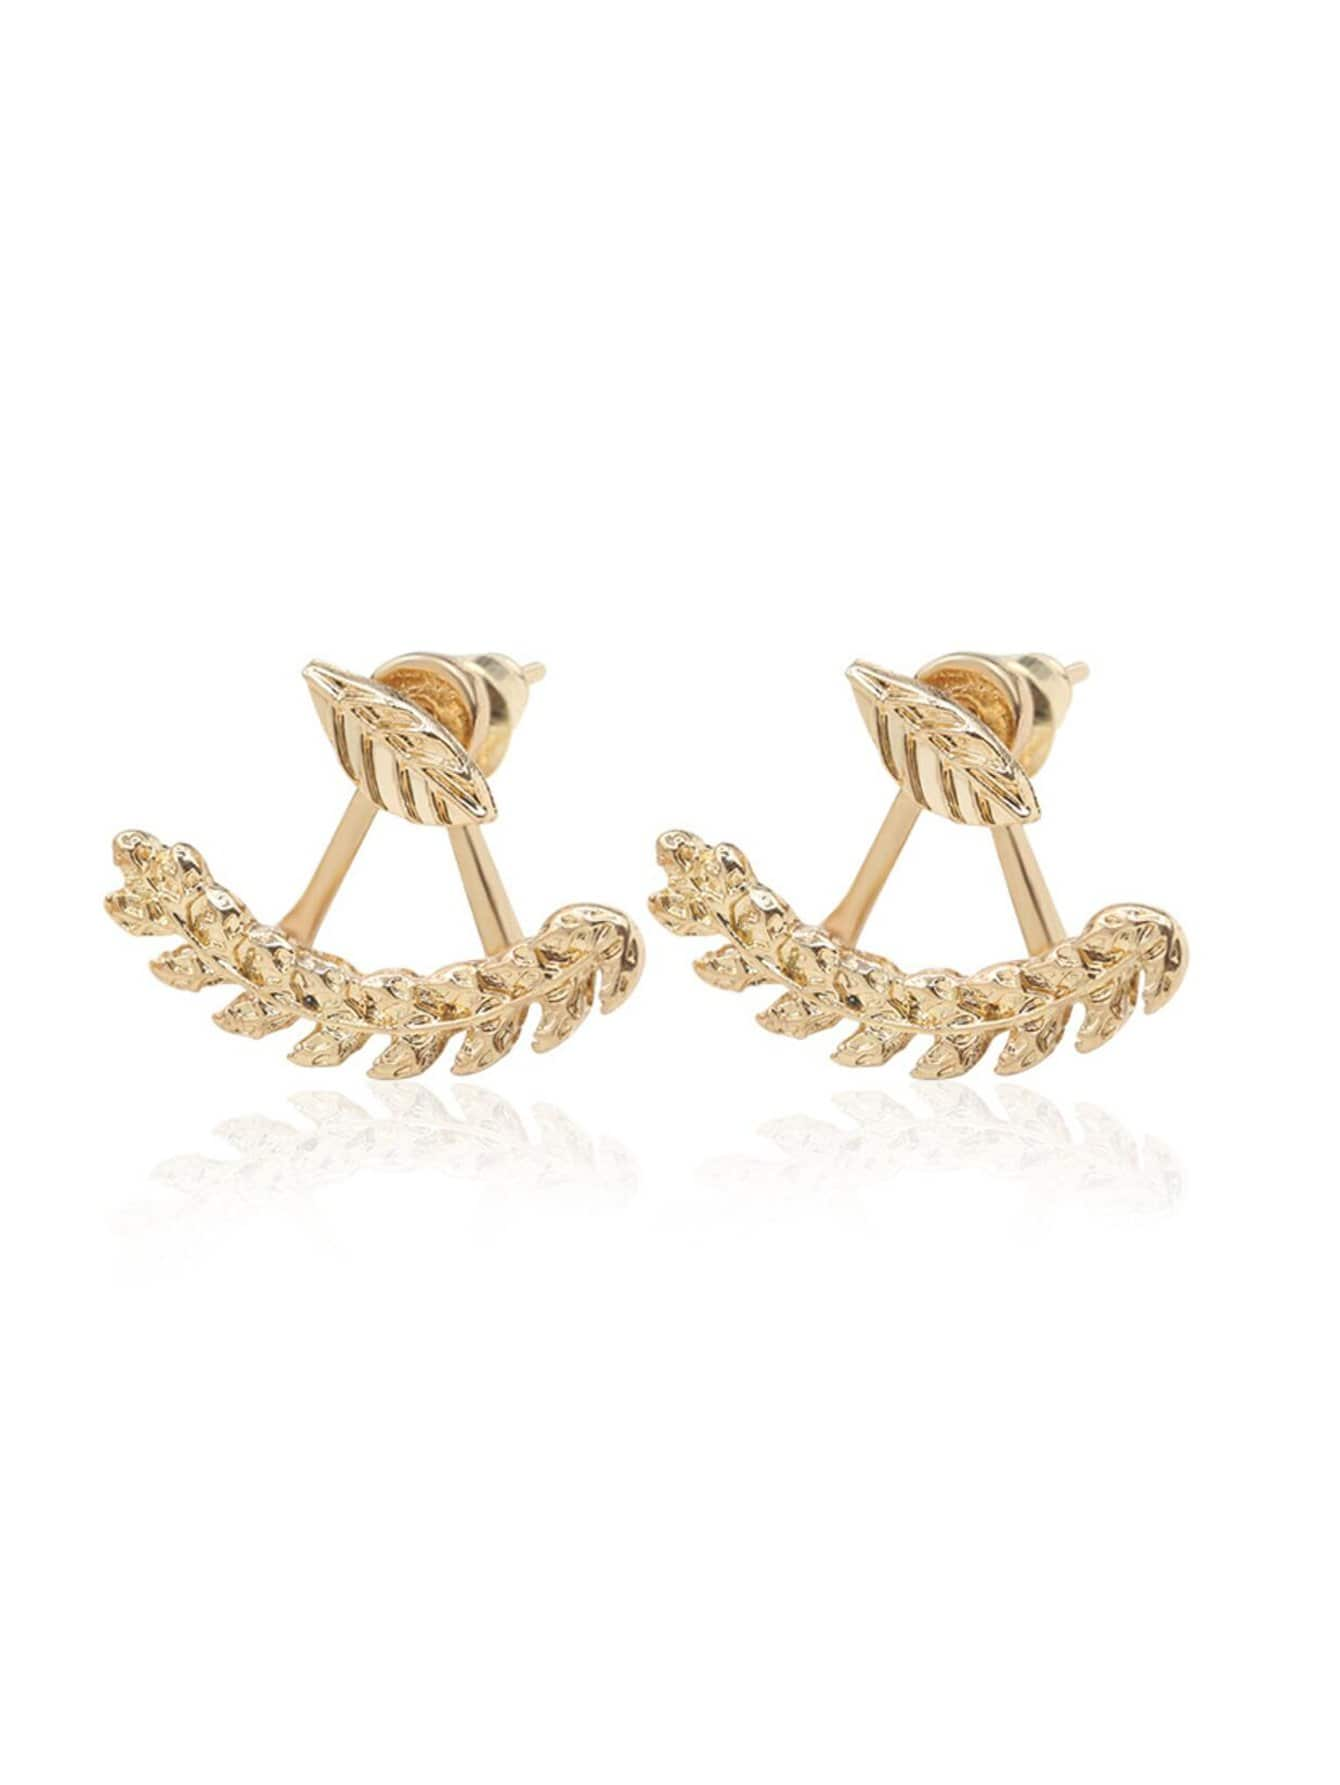 Leaf Shape Swing Stud Earrings